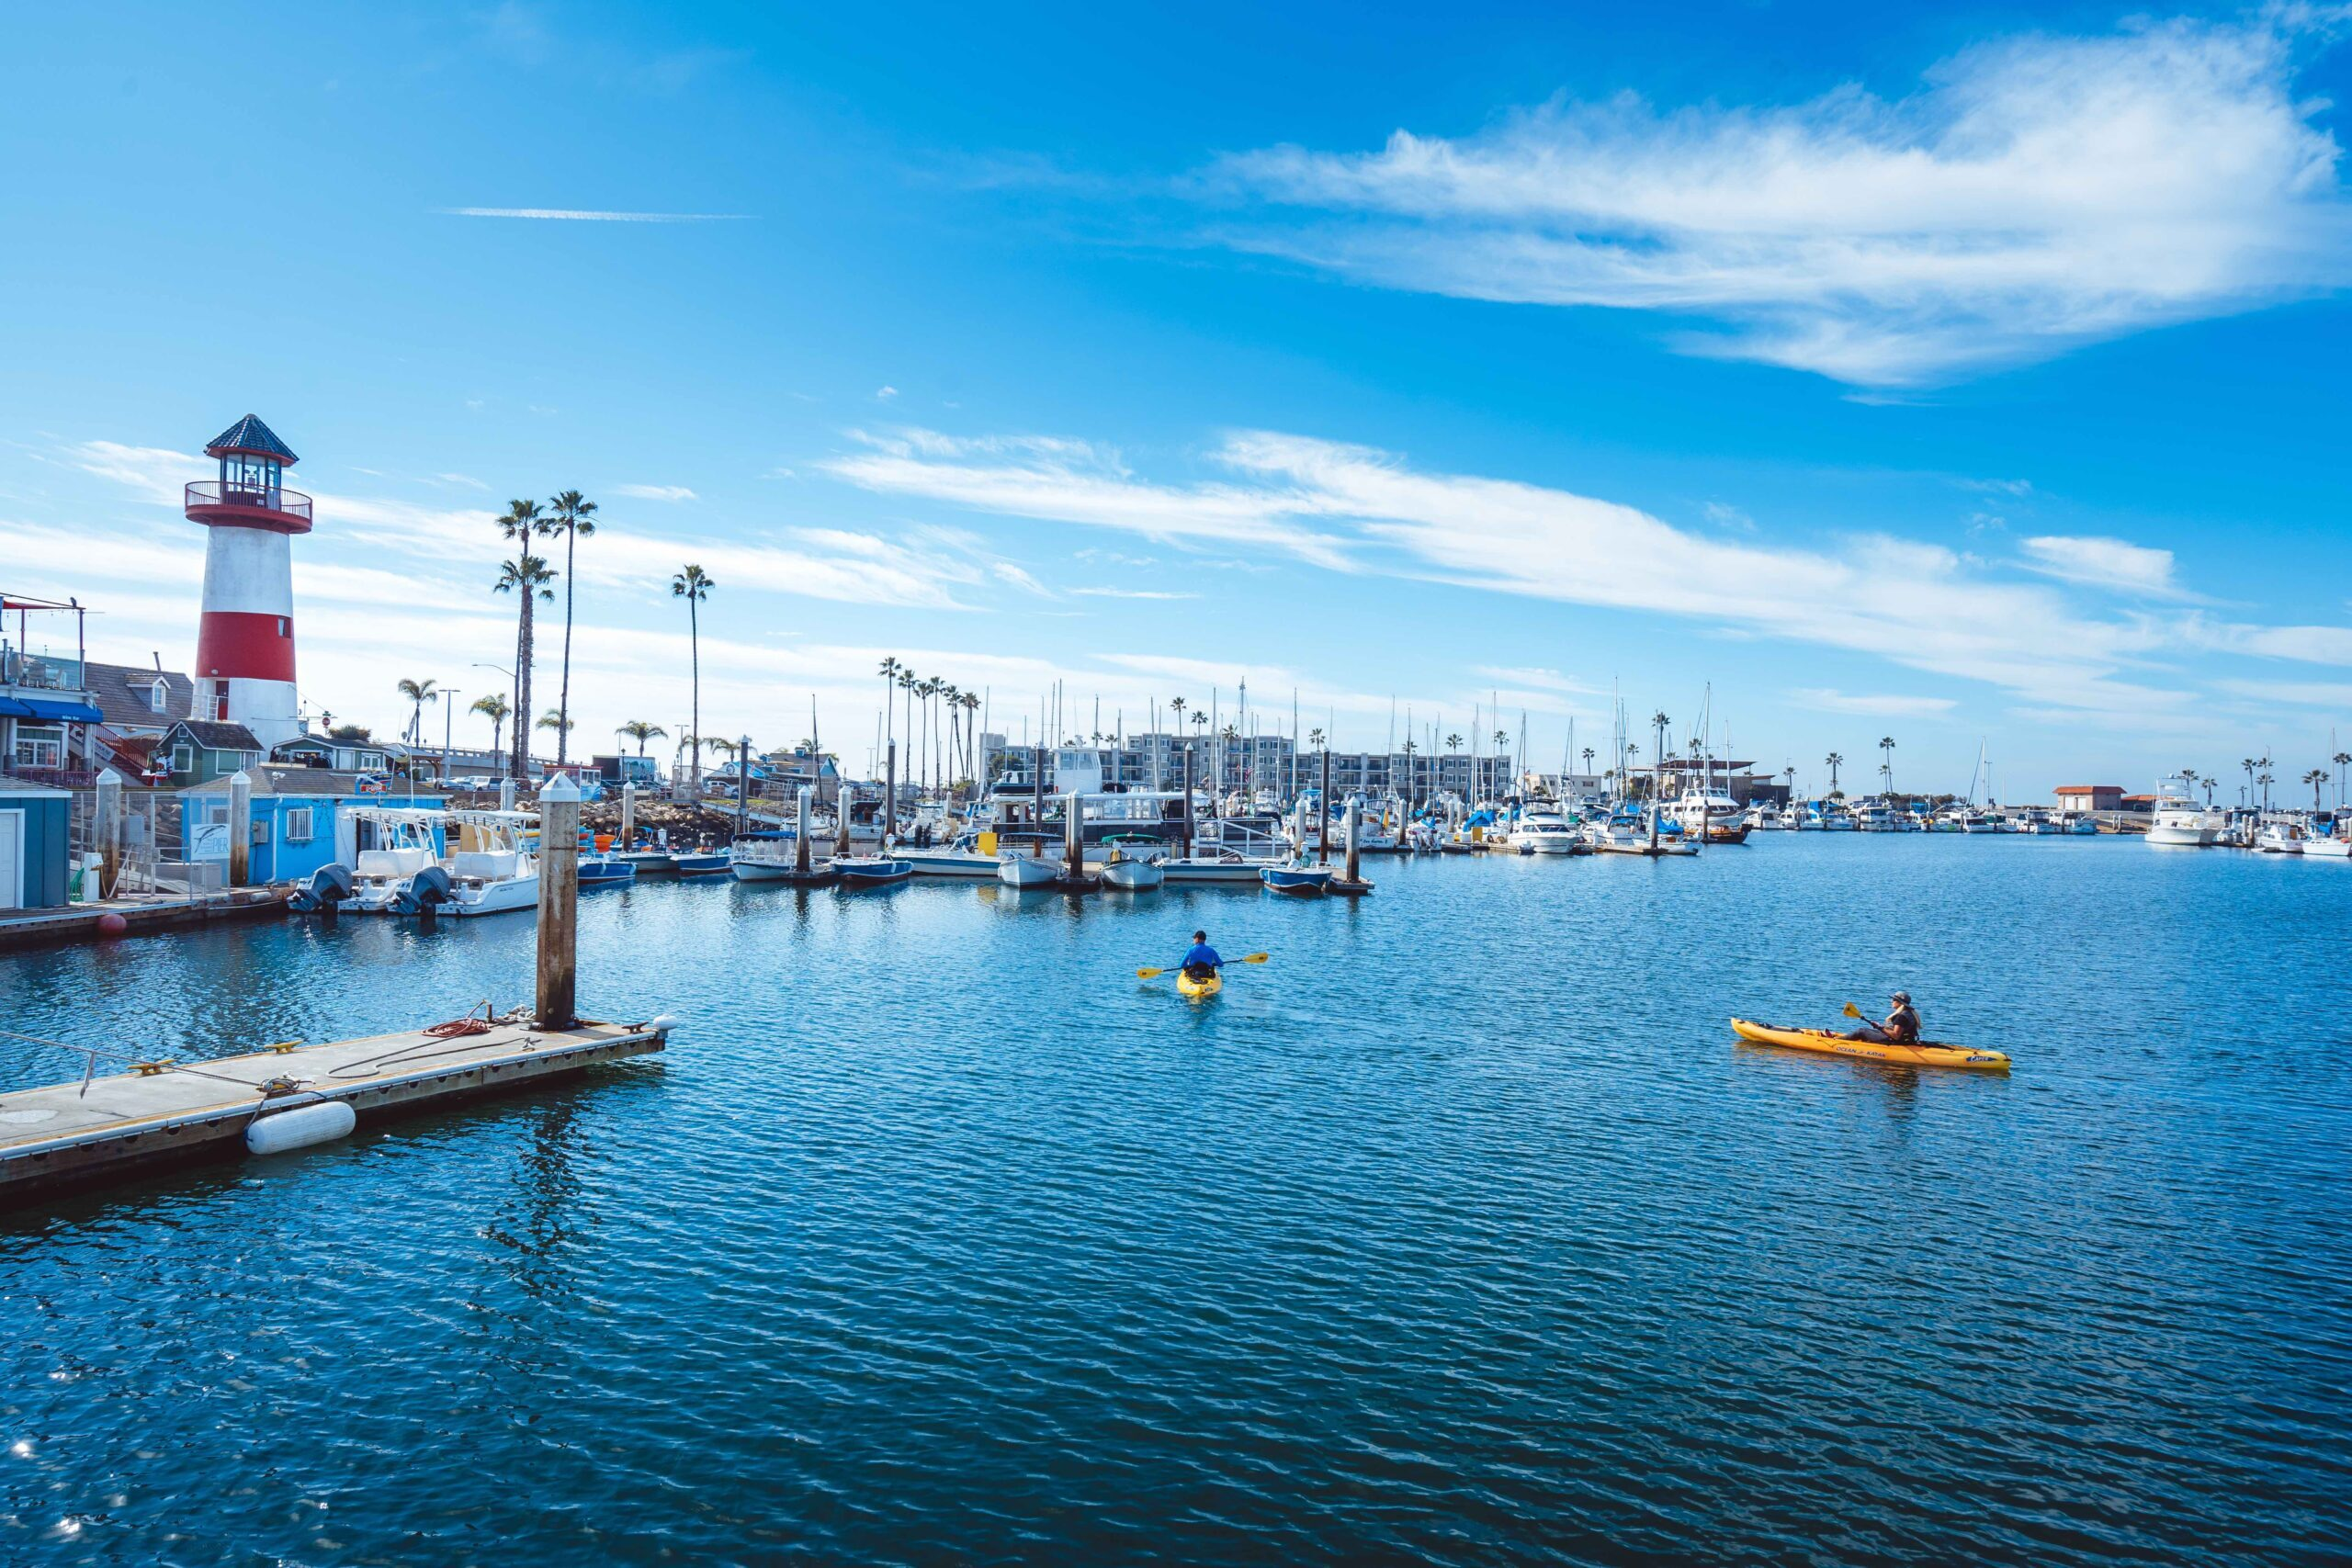 View of Harbor Village, one of the fun places to explore in Oceanside CA